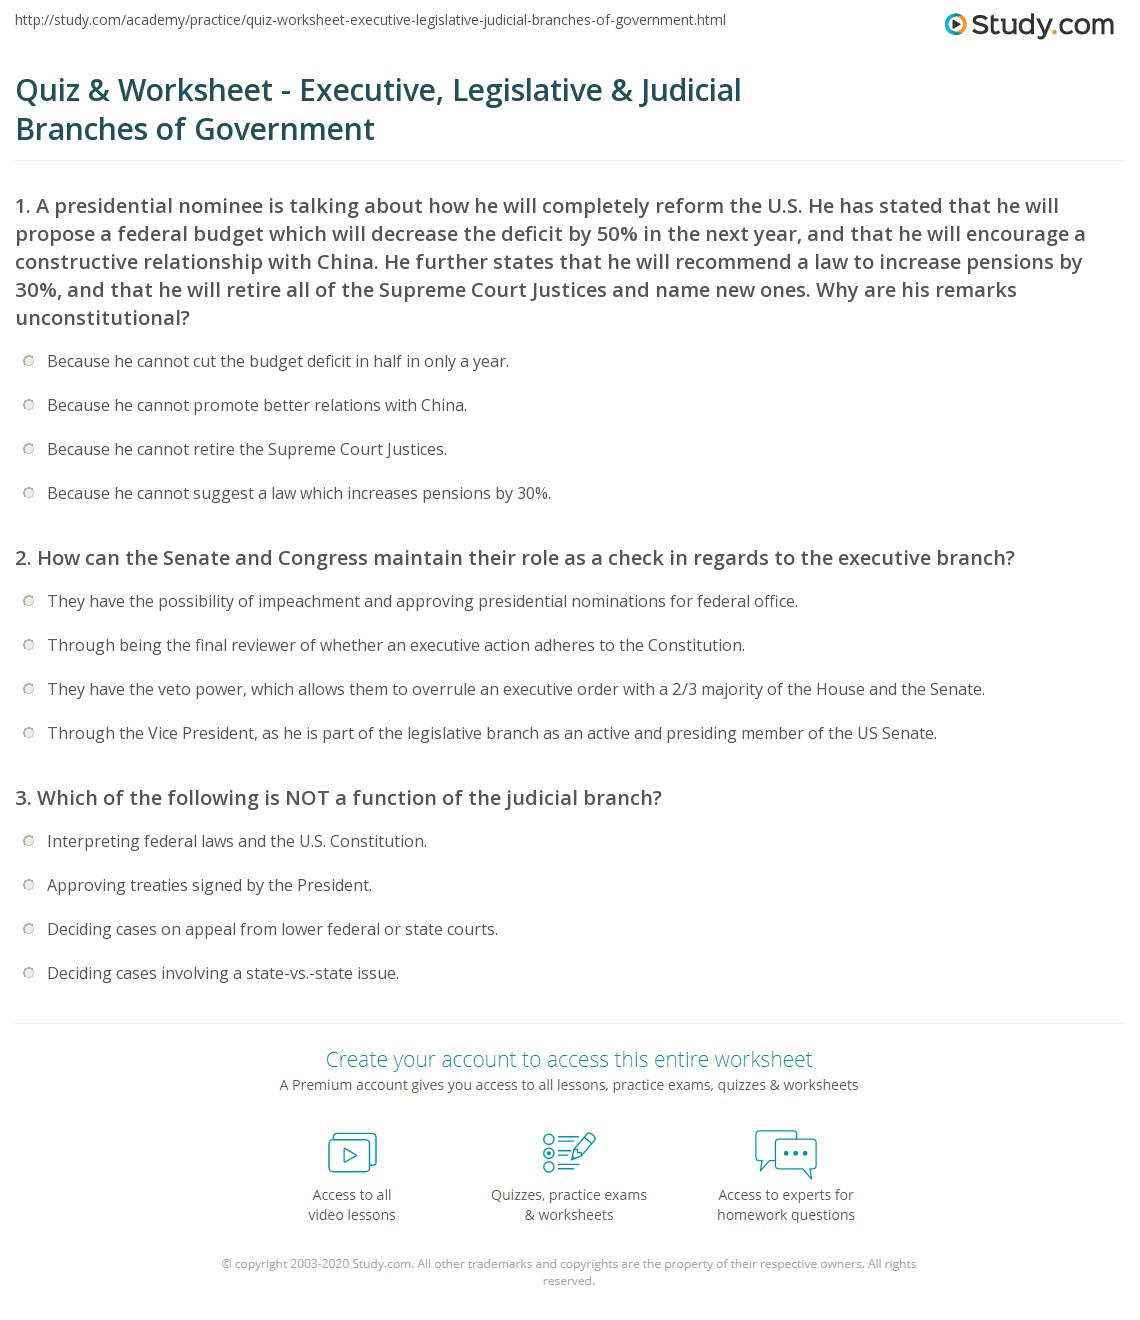 worksheet Branches Of Government Worksheets quiz worksheet executive legislative judicial branches of print the 3 government worksheet